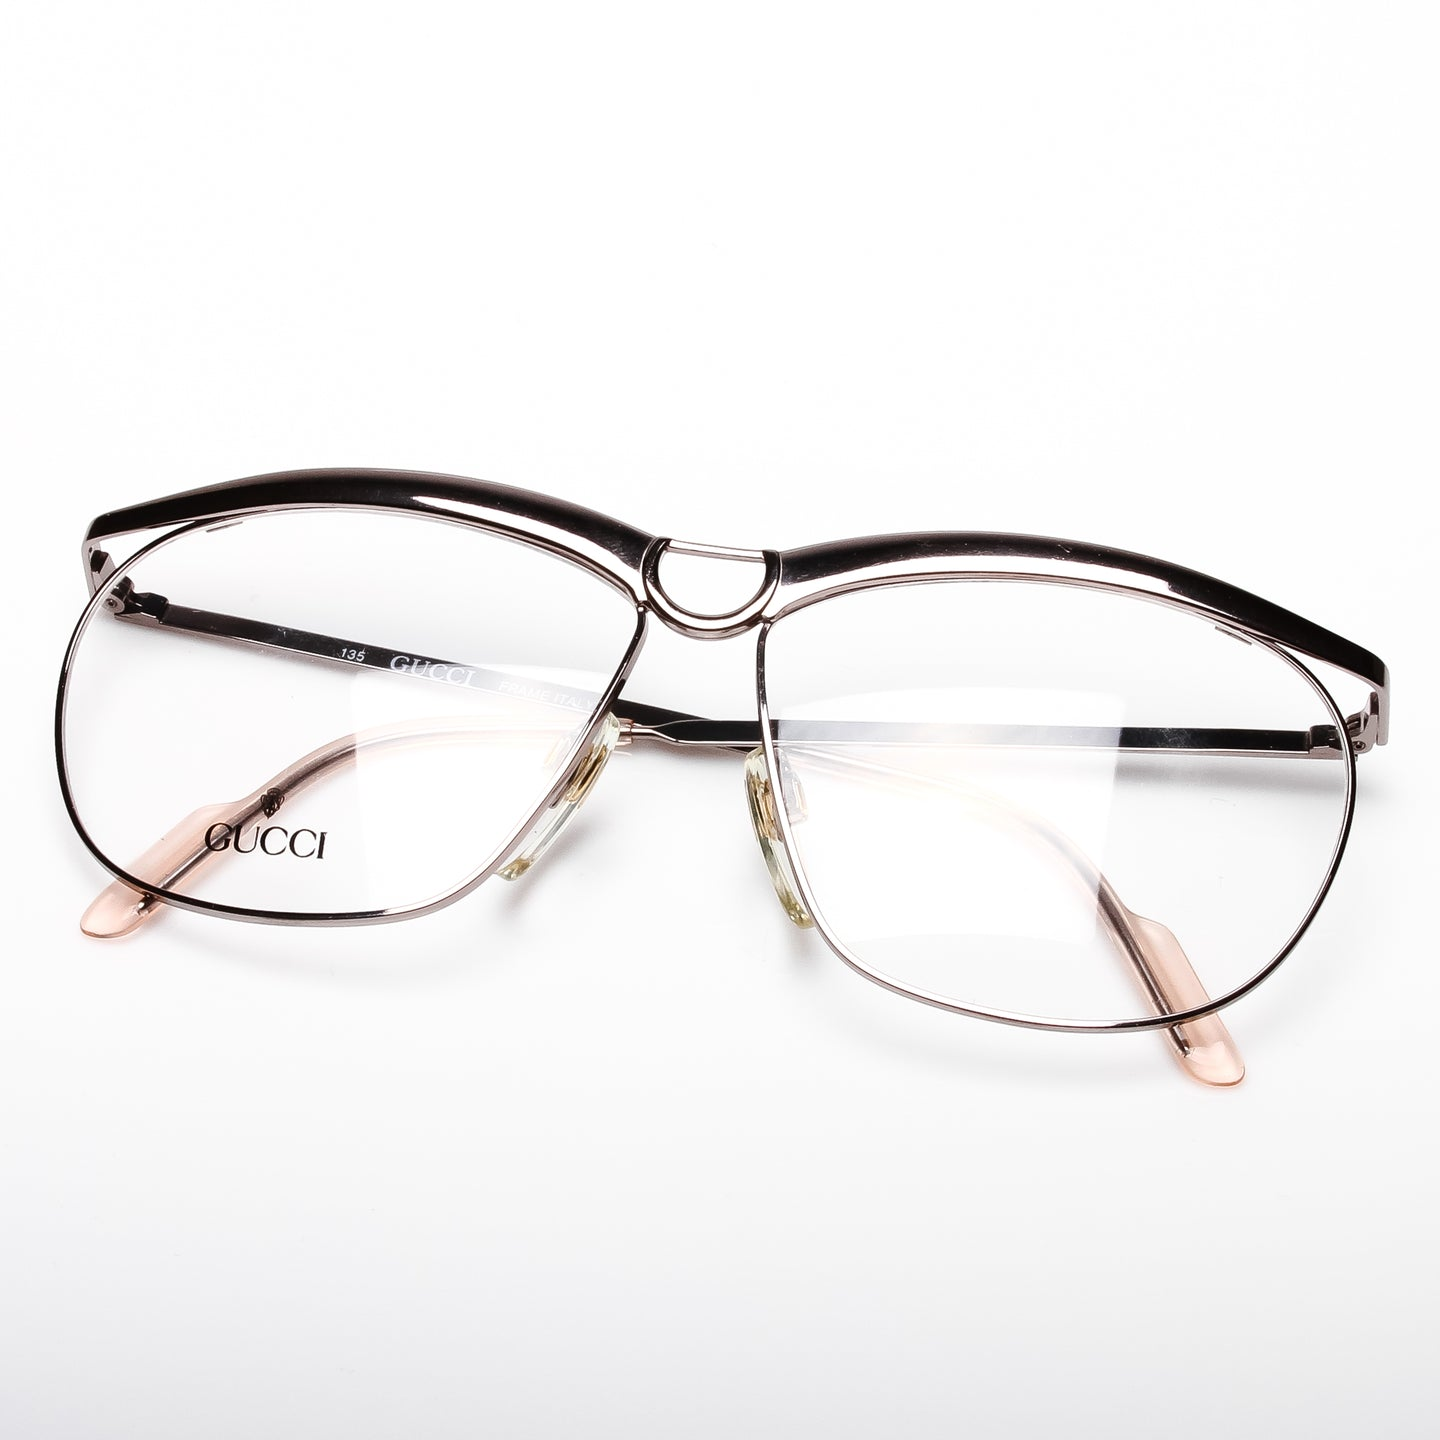 Gucci 2217 135, Gucci , glasses frames, eyeglasses online, eyeglass frames, mens glasses, womens glasses, buy glasses online, designer eyeglasses, vintage sunglasses, retro sunglasses, vintage glasses, sunglass, eyeglass, glasses, lens, vintage frames company, vf